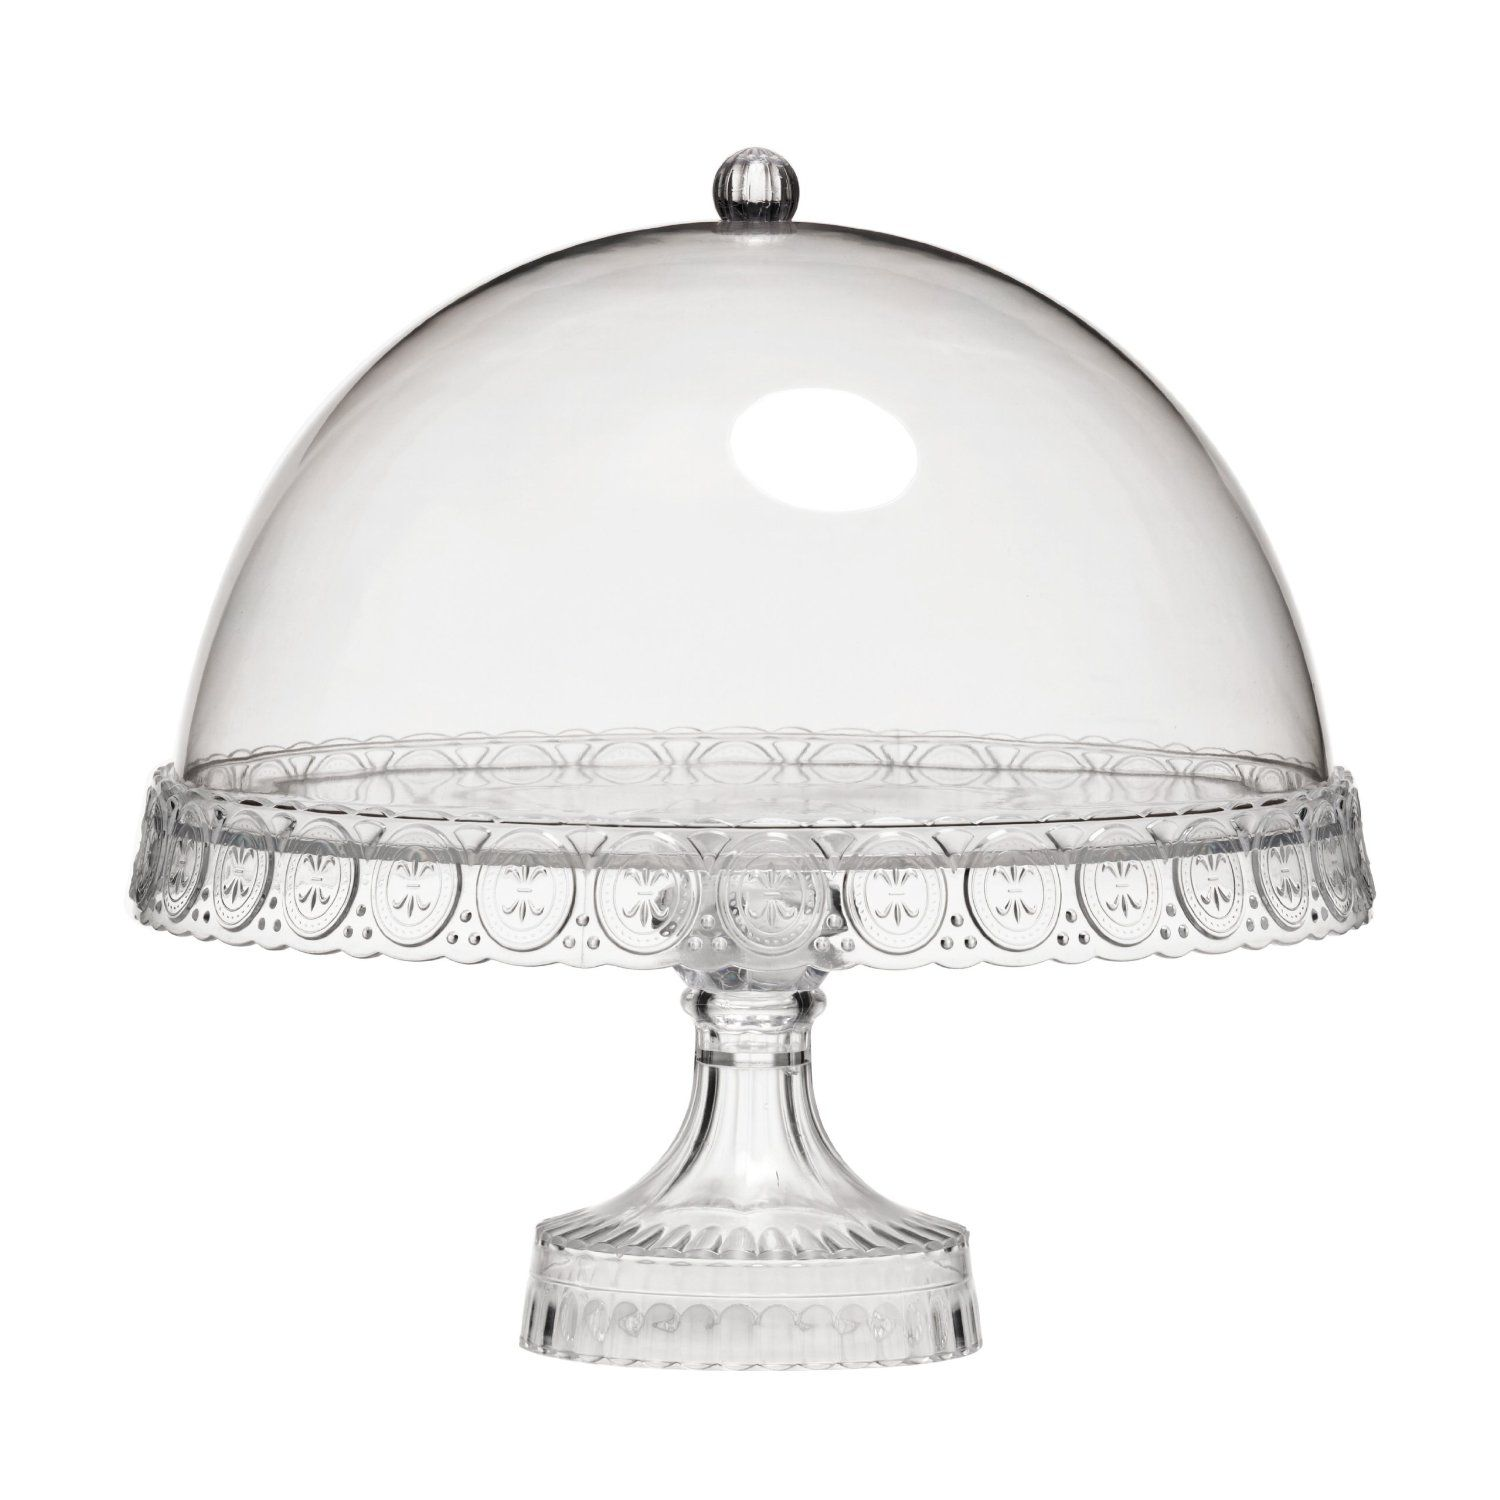 Premier Housewares Cake Stand with Dome Lid Amazon Kitchen